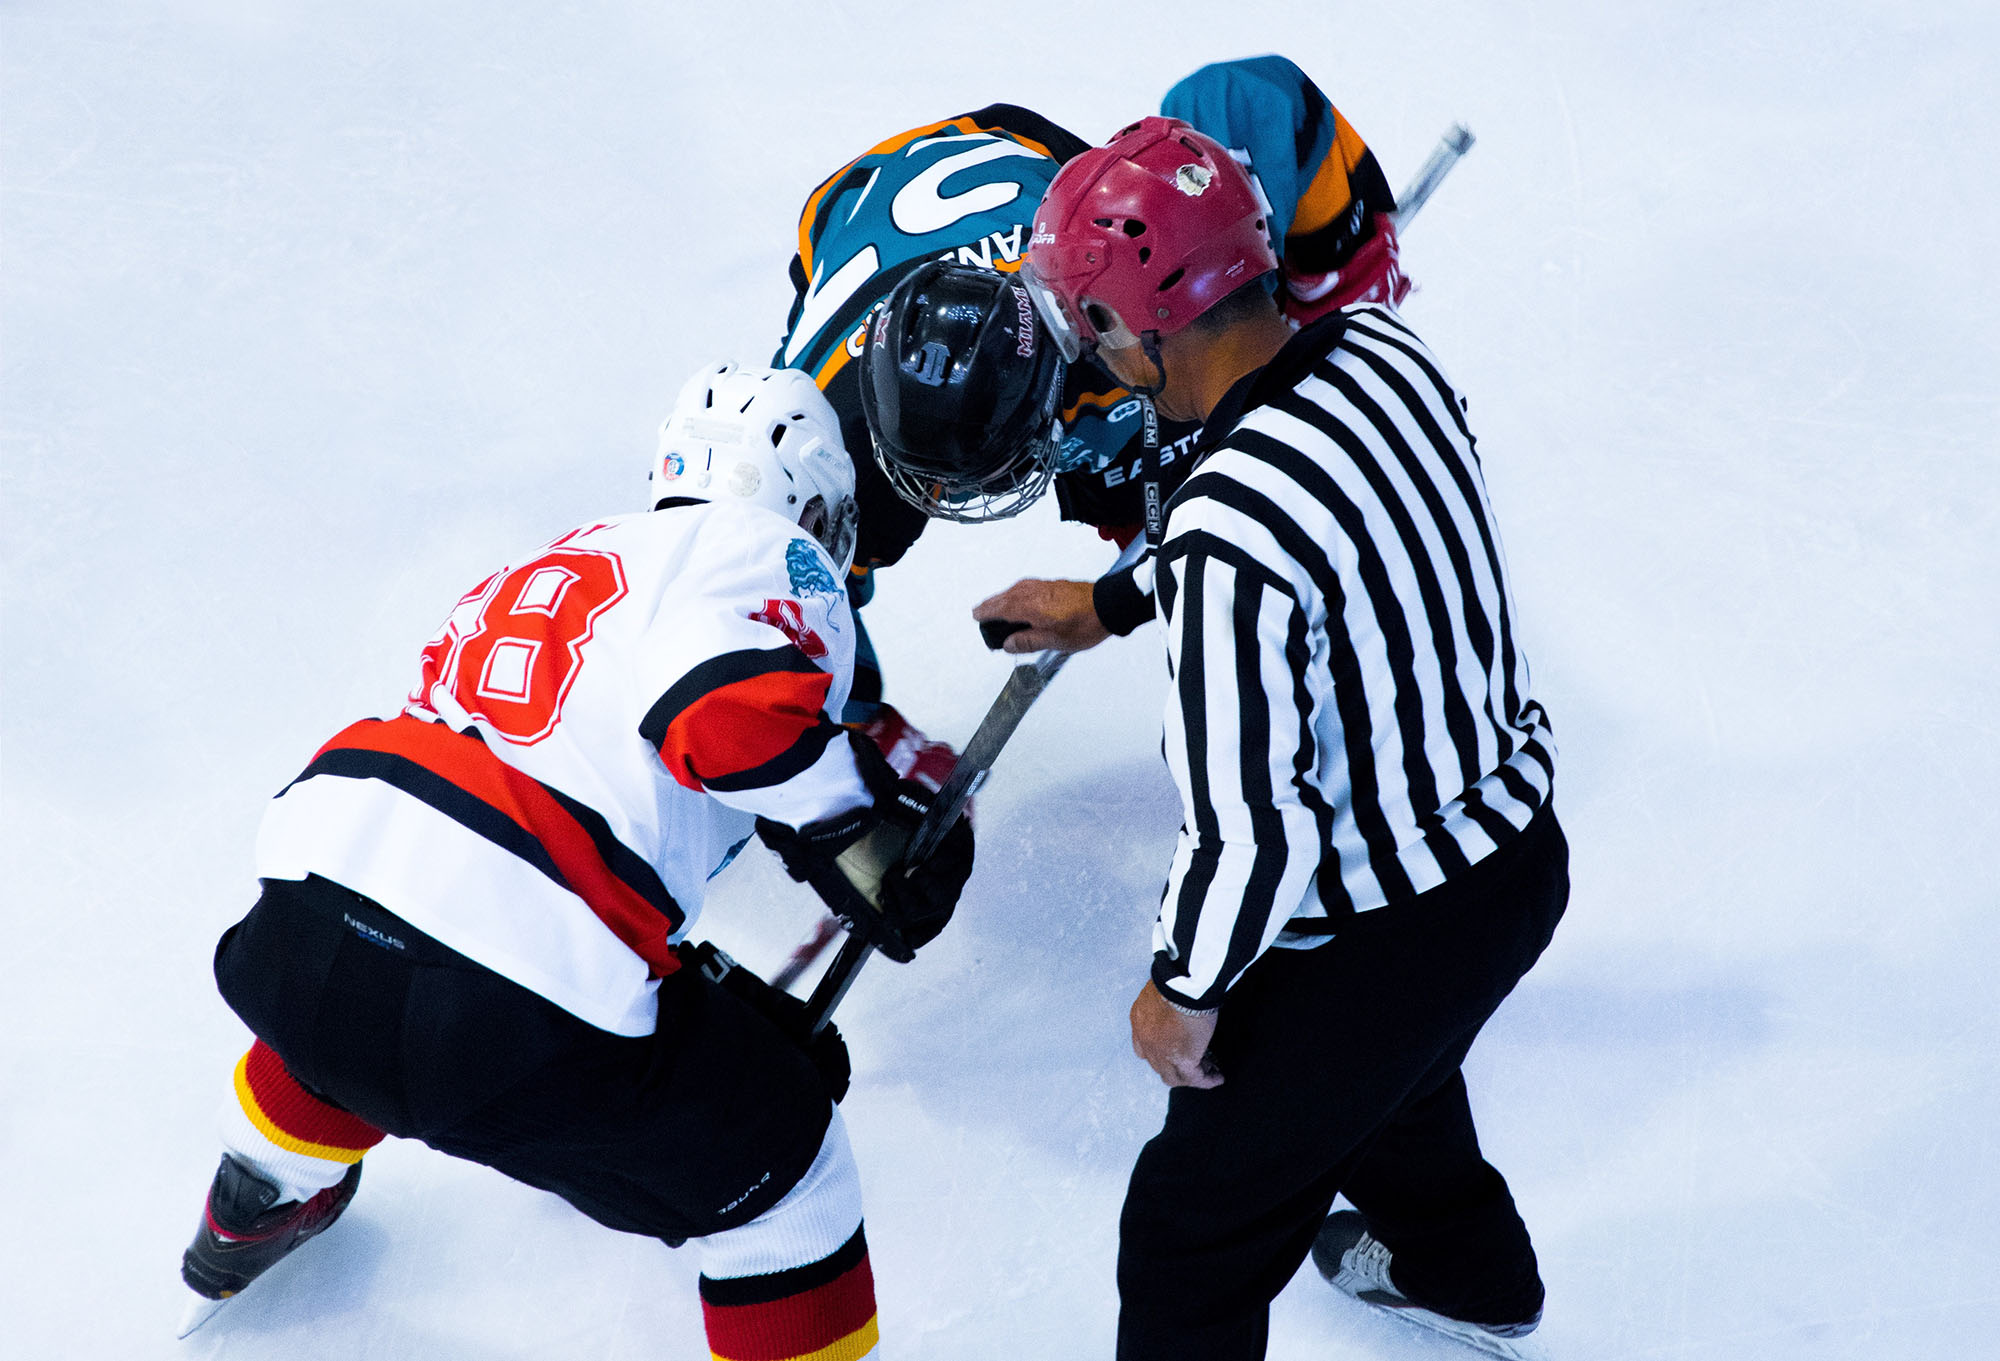 Hockey faceoff (Photo: Yifei Chen)